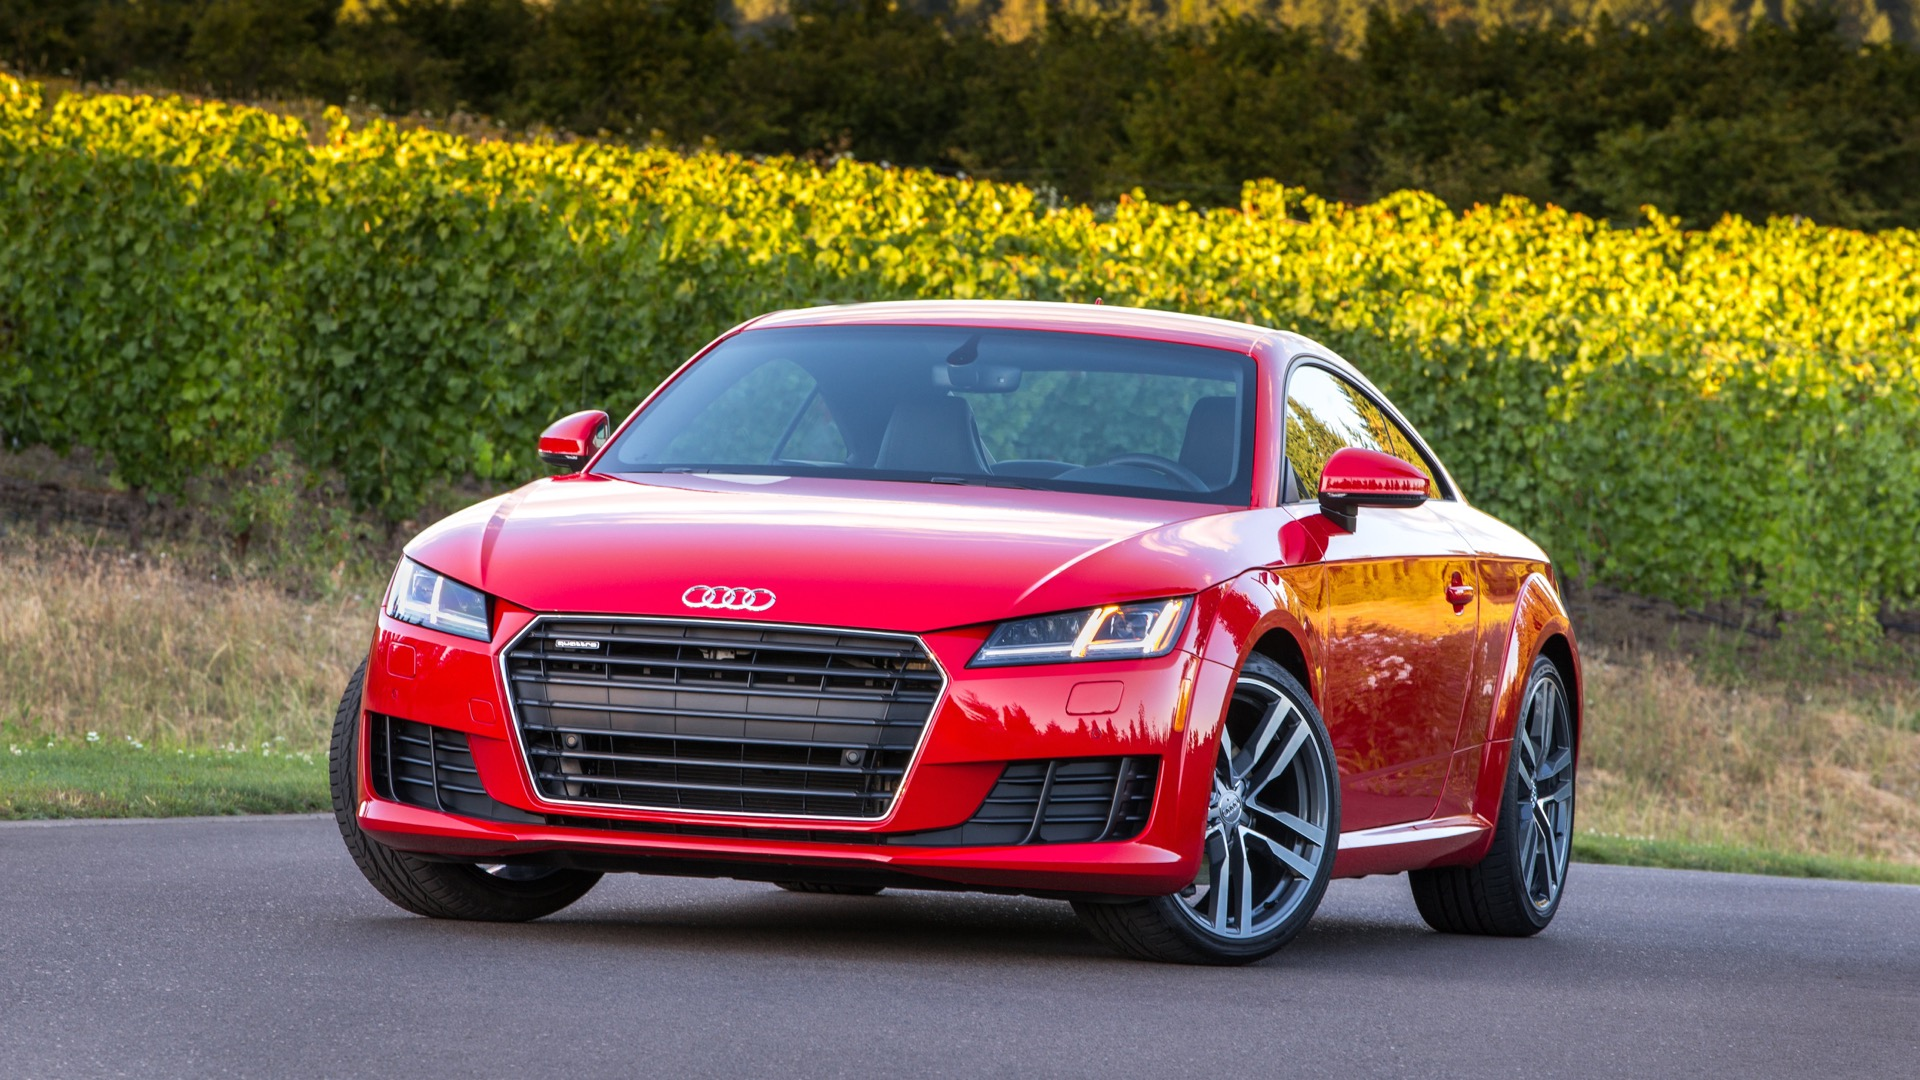 2017 Audi Tt Safety Review And Crash Test Ratings The